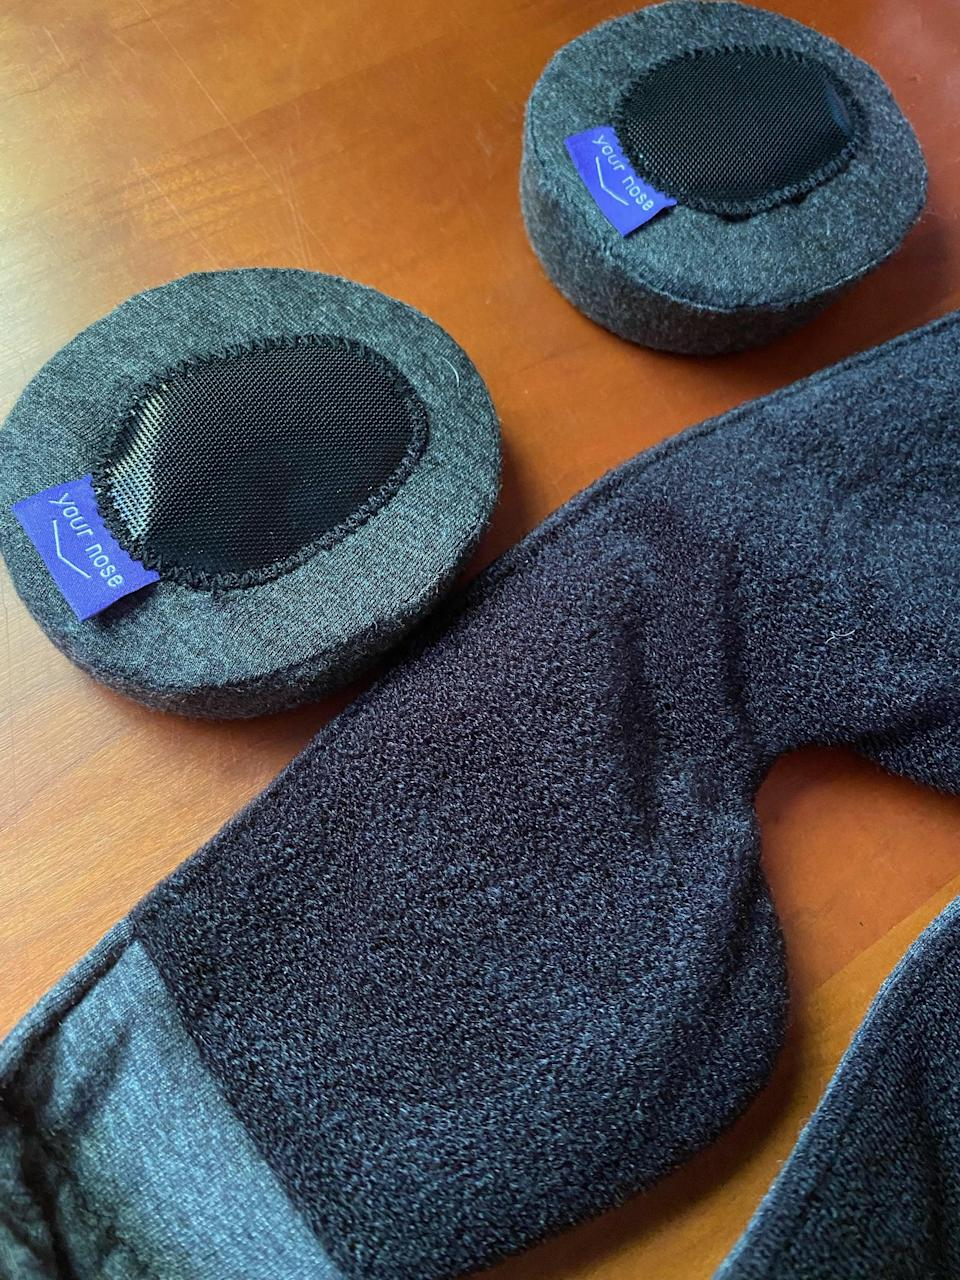 <p>The eye cups stay put with velcro so they're easily adjustable to give you your perfect fit. The cups can also be removed if you prefer gentle pressure on your closed eyelids and just want to use the weighted eye mask alone. The interior fabric is soft and cozy like the cups. This is a great option if you sleep on your side or belly. It still blocks most of the light as long as you make sure it's snug against the bridge of your nose. </p> <p>You can also purchase the strap and the eye cups separately - <span>Weighted Head Strap</span> ($30) and <span>Eye Cups</span> ($20) - if you need an extra of either one. There are also different types of eye cups available such as <span>Silk Eye Cups</span> ($30) or <span>Cool Eye Cups</span> ($25), so you can mix and match what you prefer. If you want to swap out the strap, there's also a lavender-scented <span>Aroma Head Strap</span> ($30), so there are a lot of options.</p>